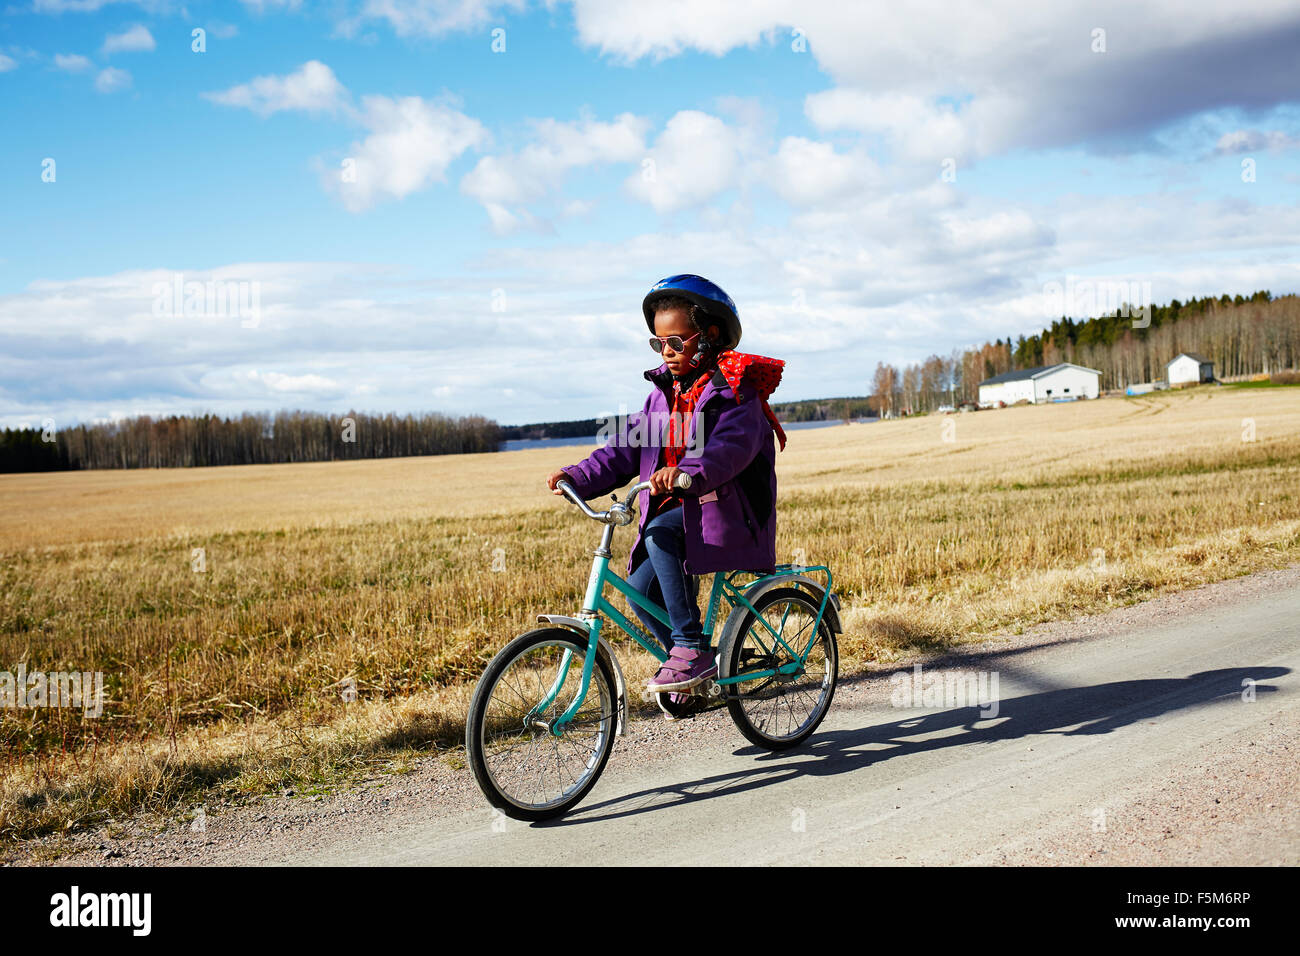 Sweden, Vastra Gotaland, Gullspang, Runnas, Girl (6-7) cycling in countryside Stock Photo